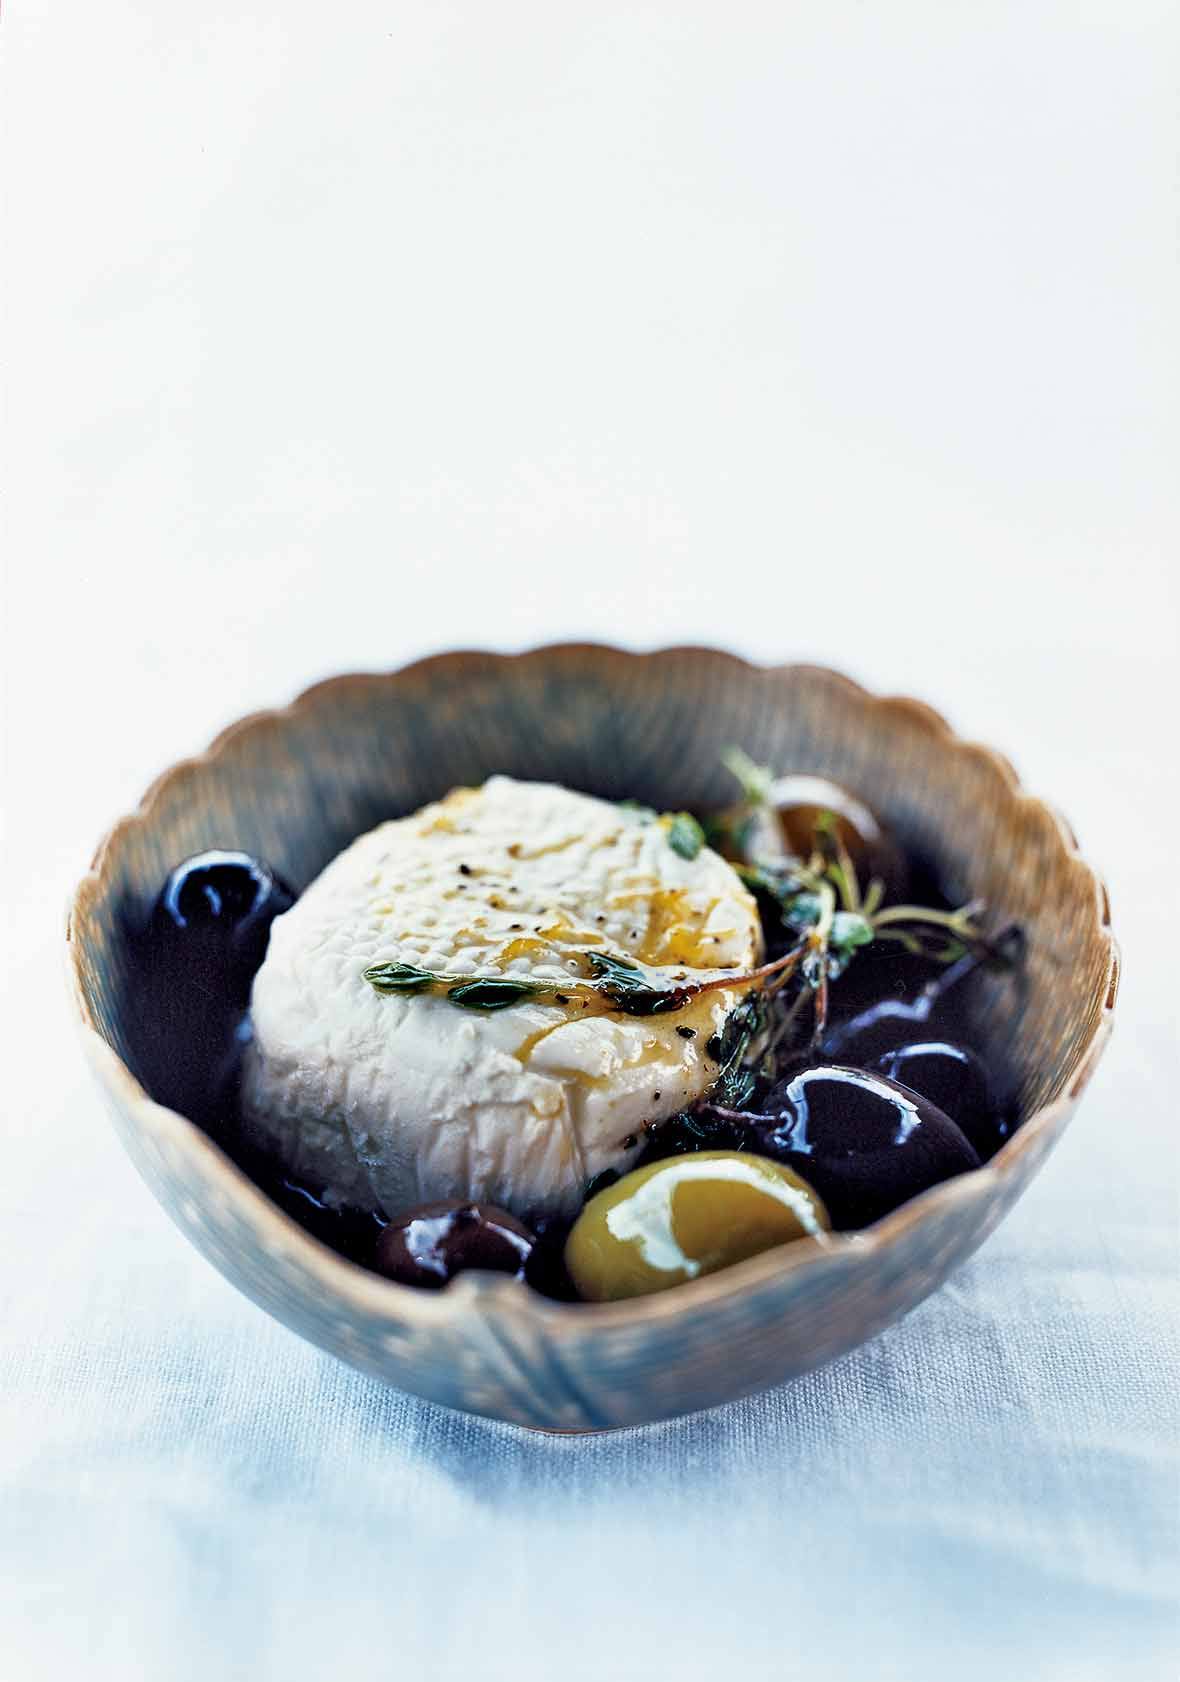 A decorative bowl filled with a sphere of goat cheese and a few olives, topped with a thyme sprig.